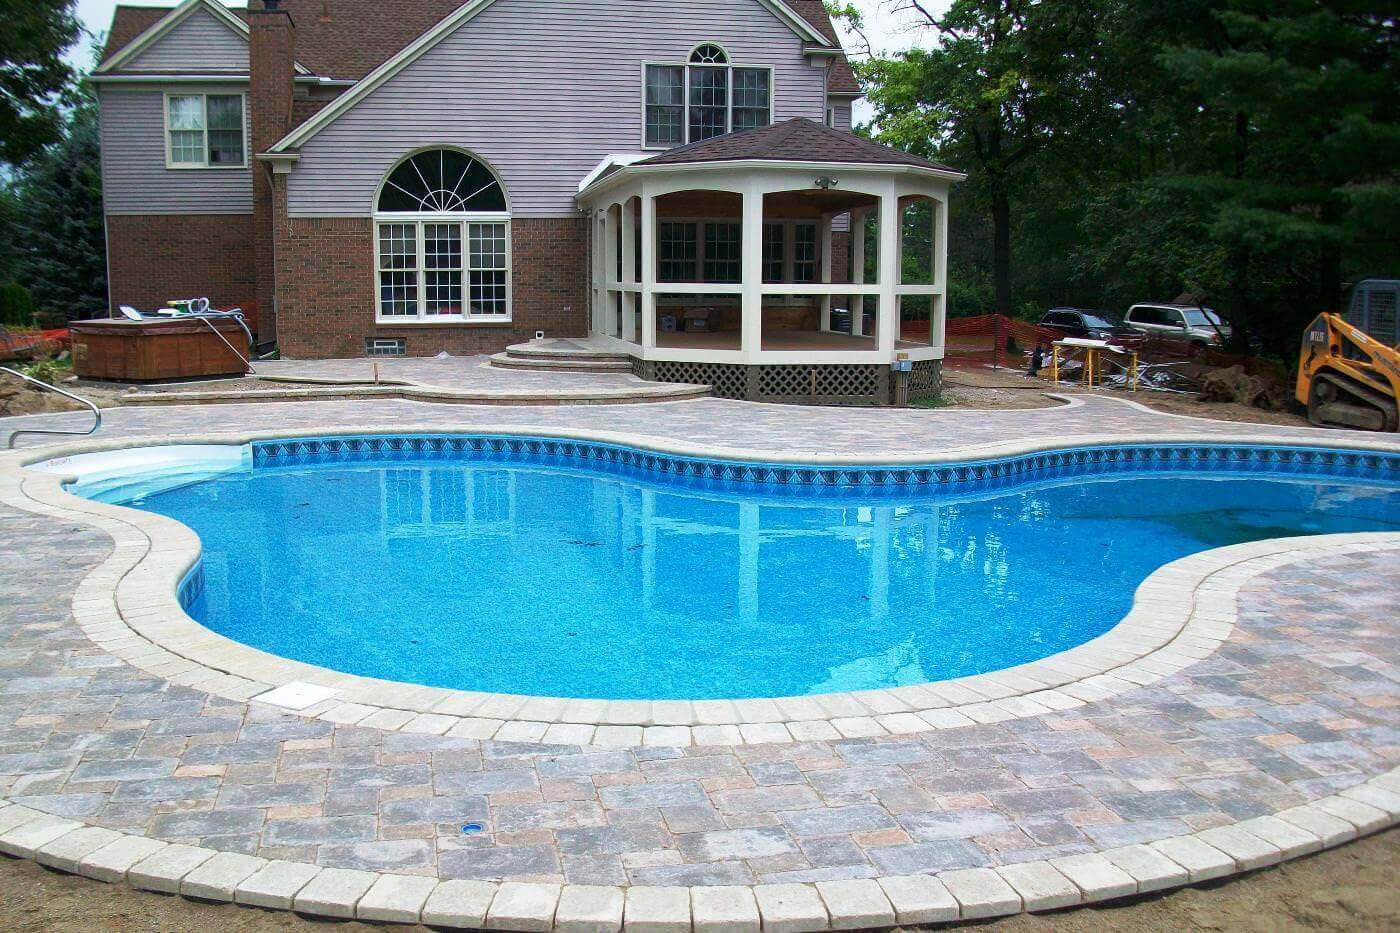 Best ideas about Cost To Put In An Inground Pool . Save or Pin Cost To Install An Inground Pool Cost Inground Pool Now.